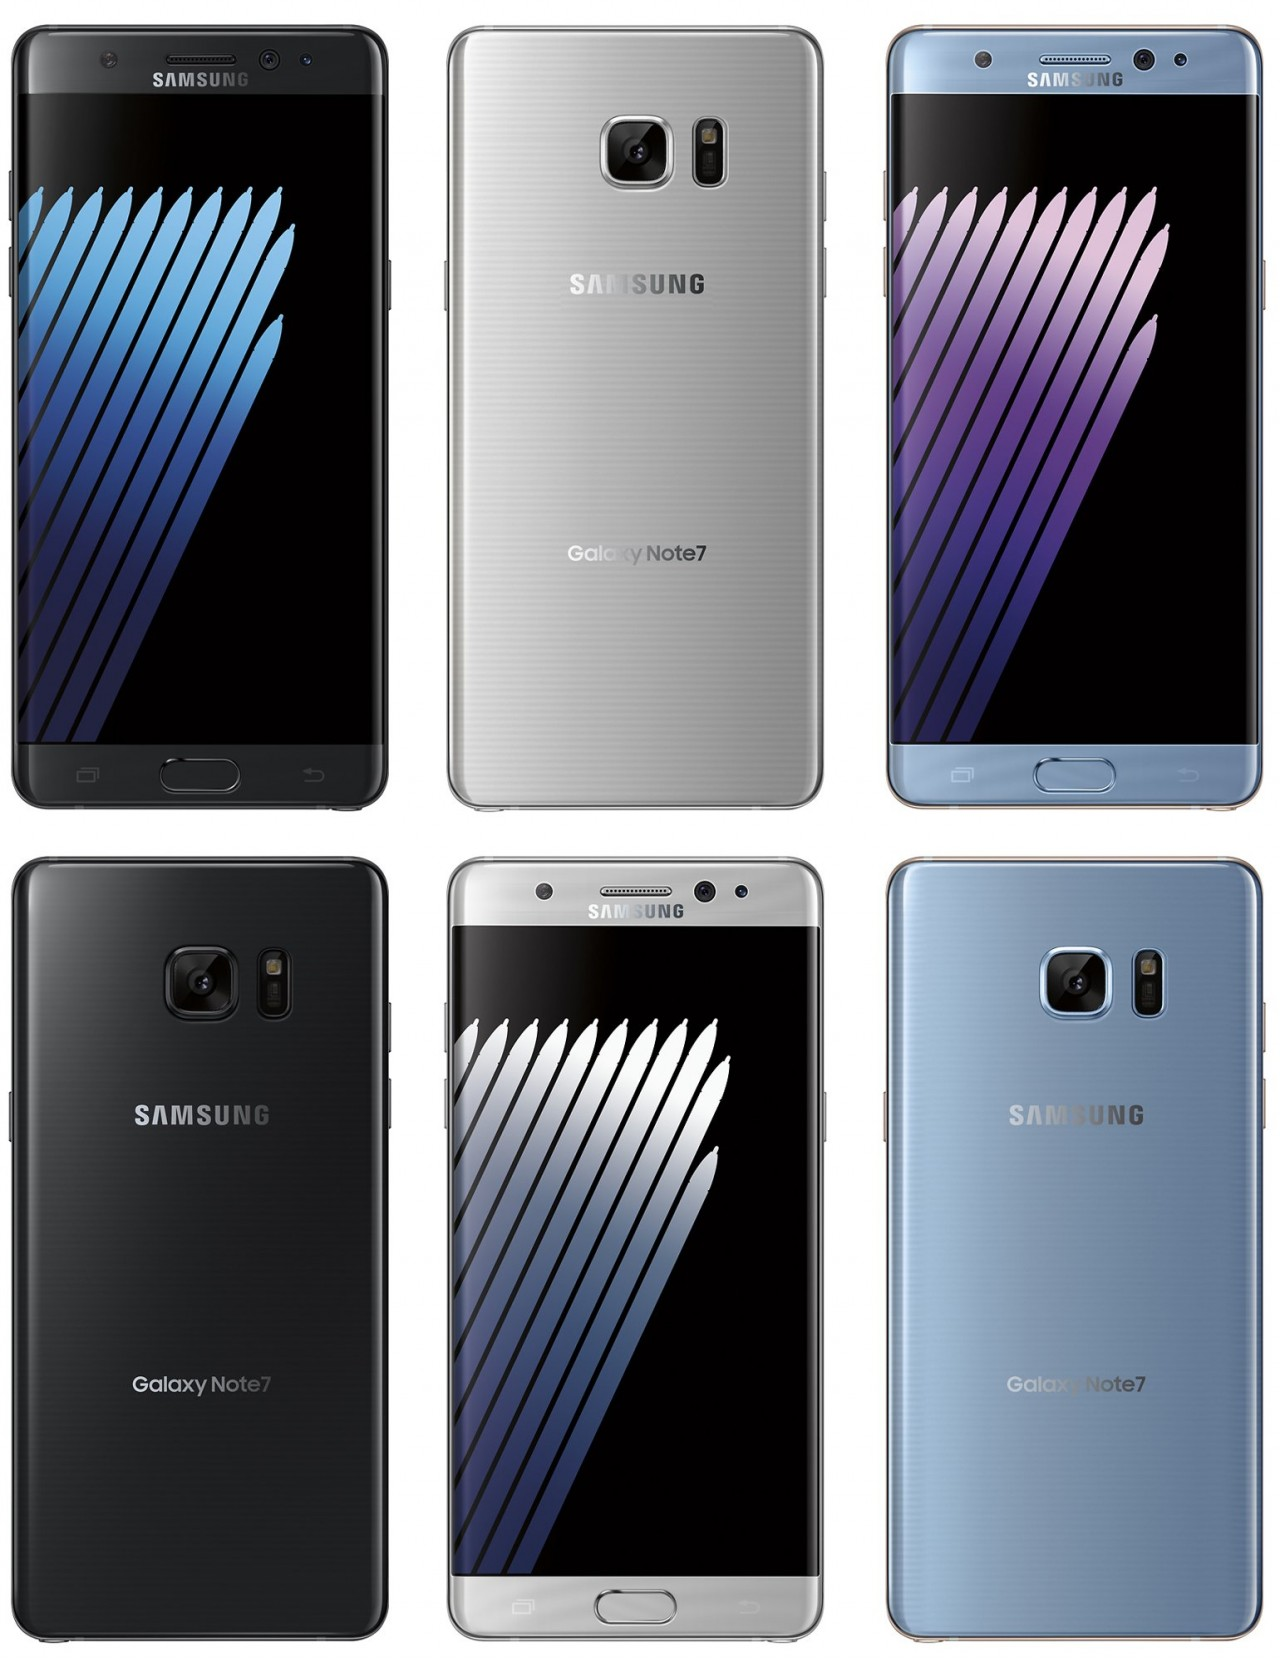 Samsung Galaxy Note 7 Leaked Images